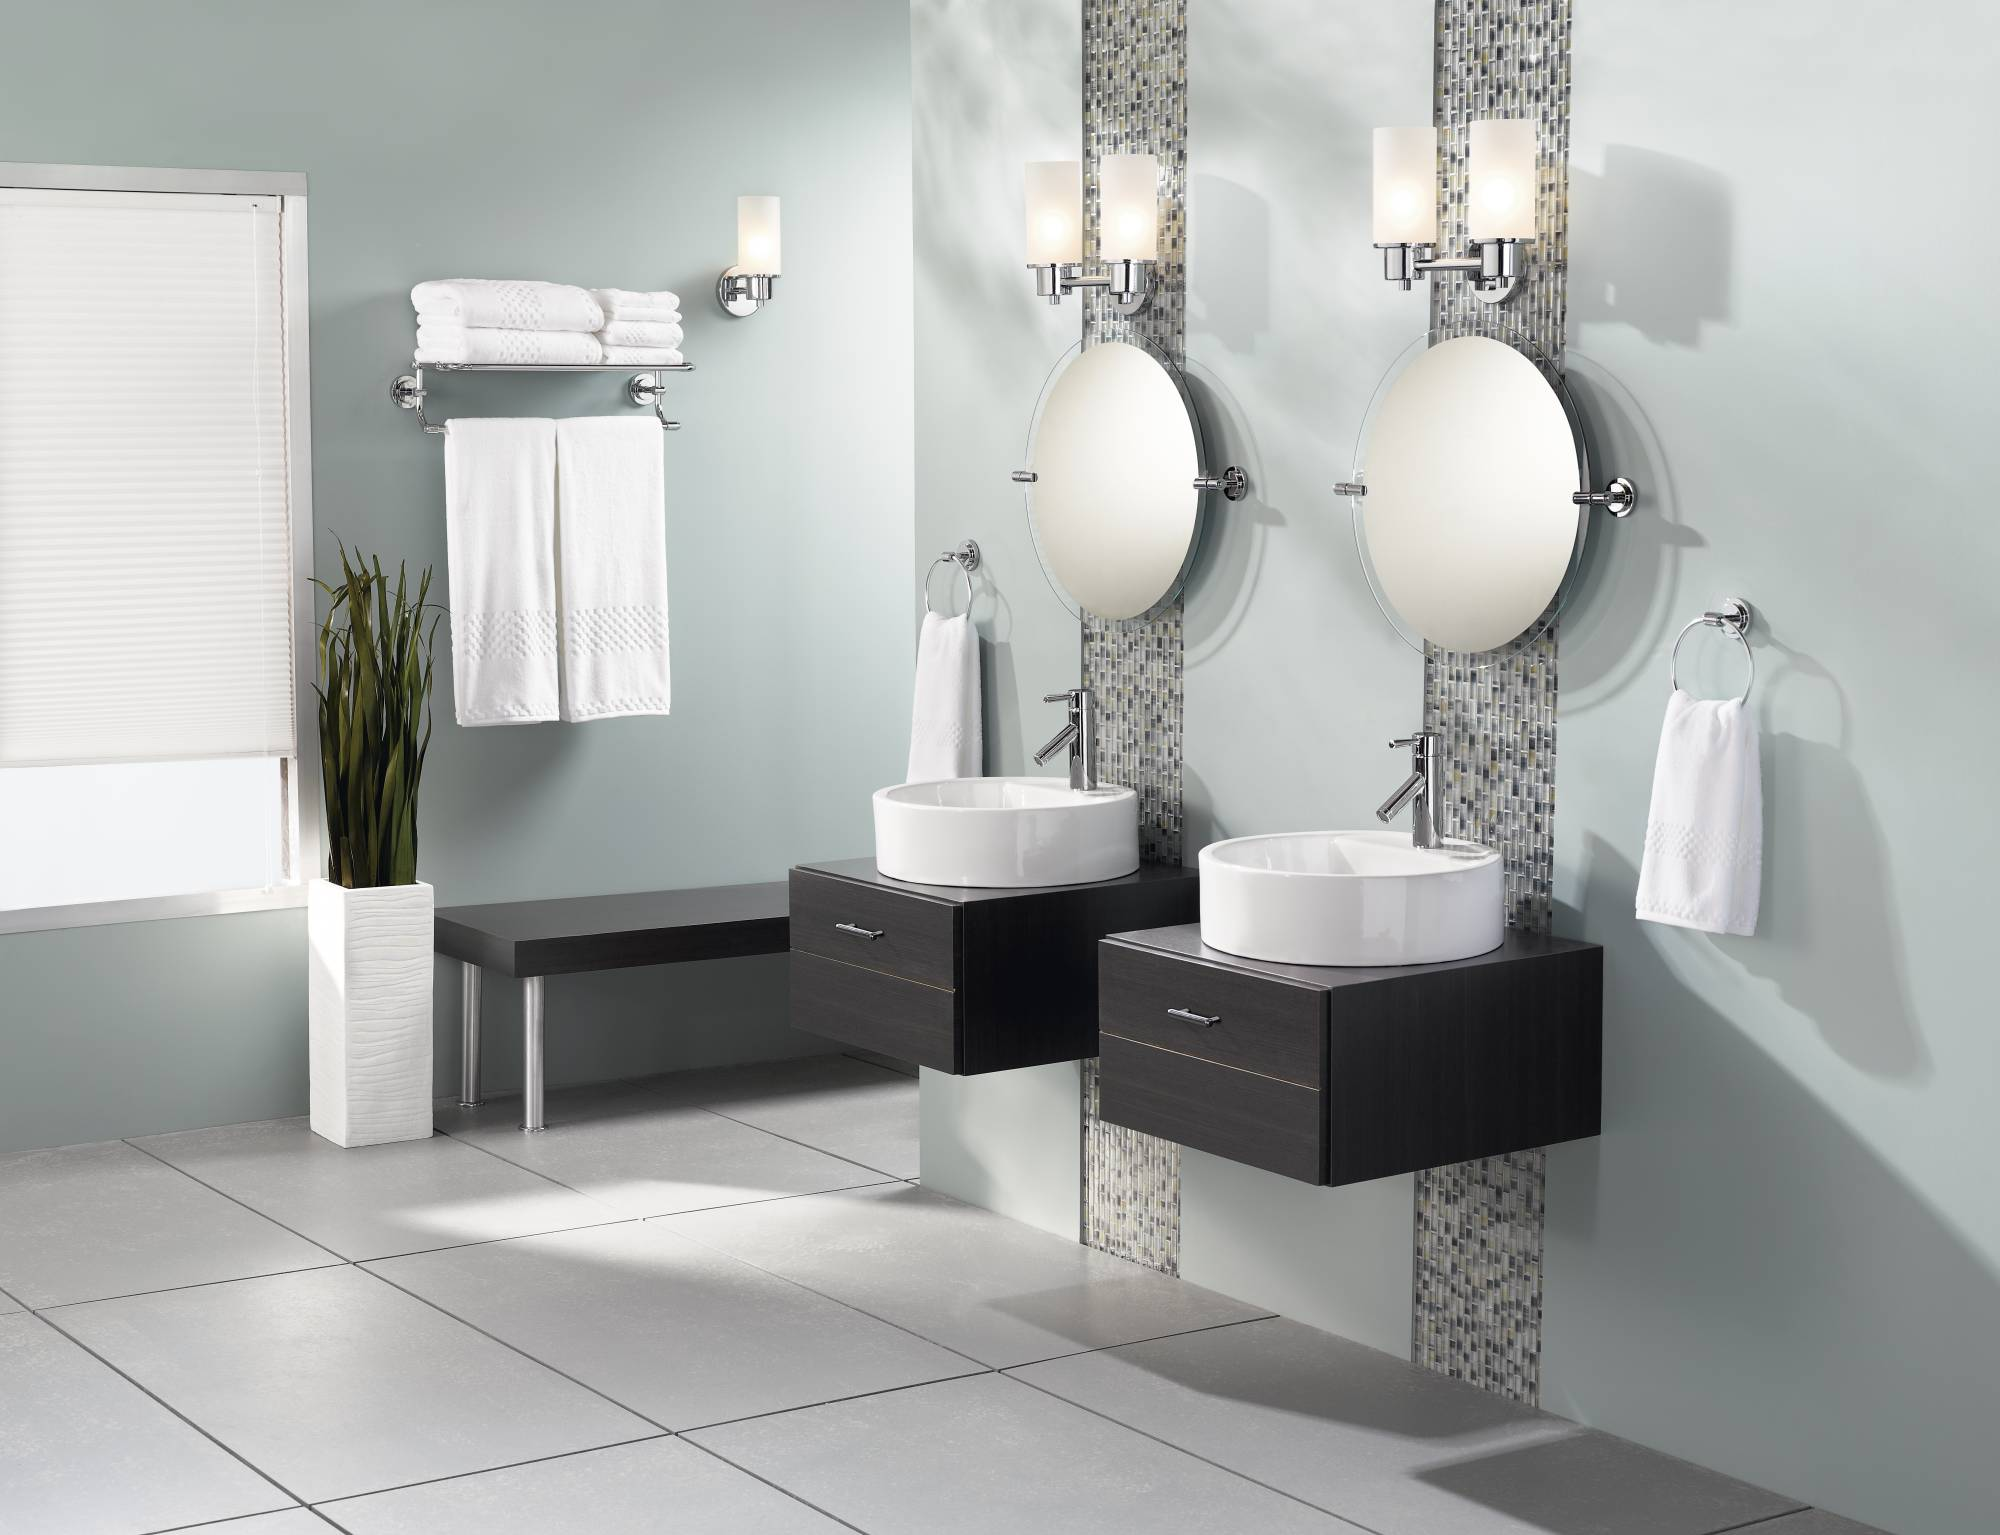 donner hotelmotel collection  donner bath furnishings  residential